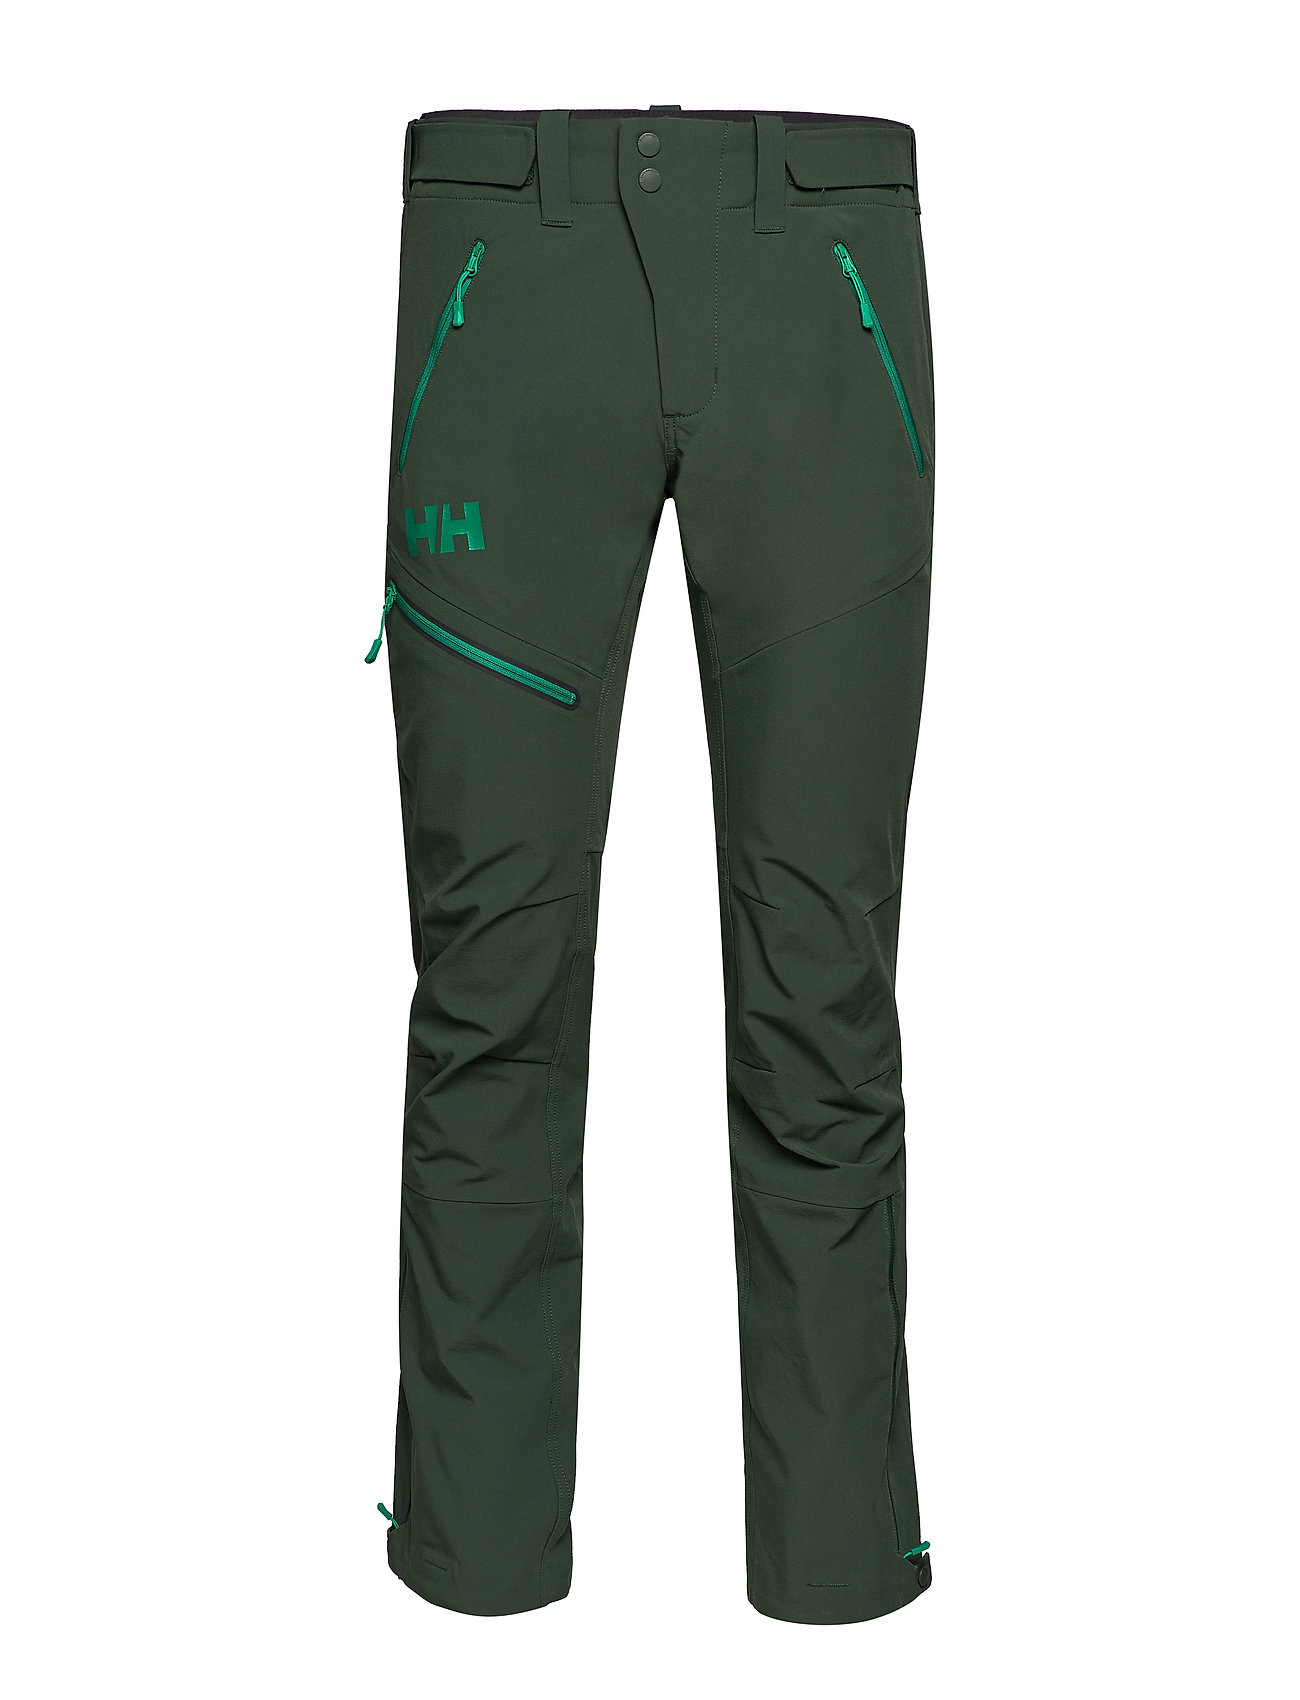 Helly Hansen ODIN HUGINN PANT - JUNGLE GREEN